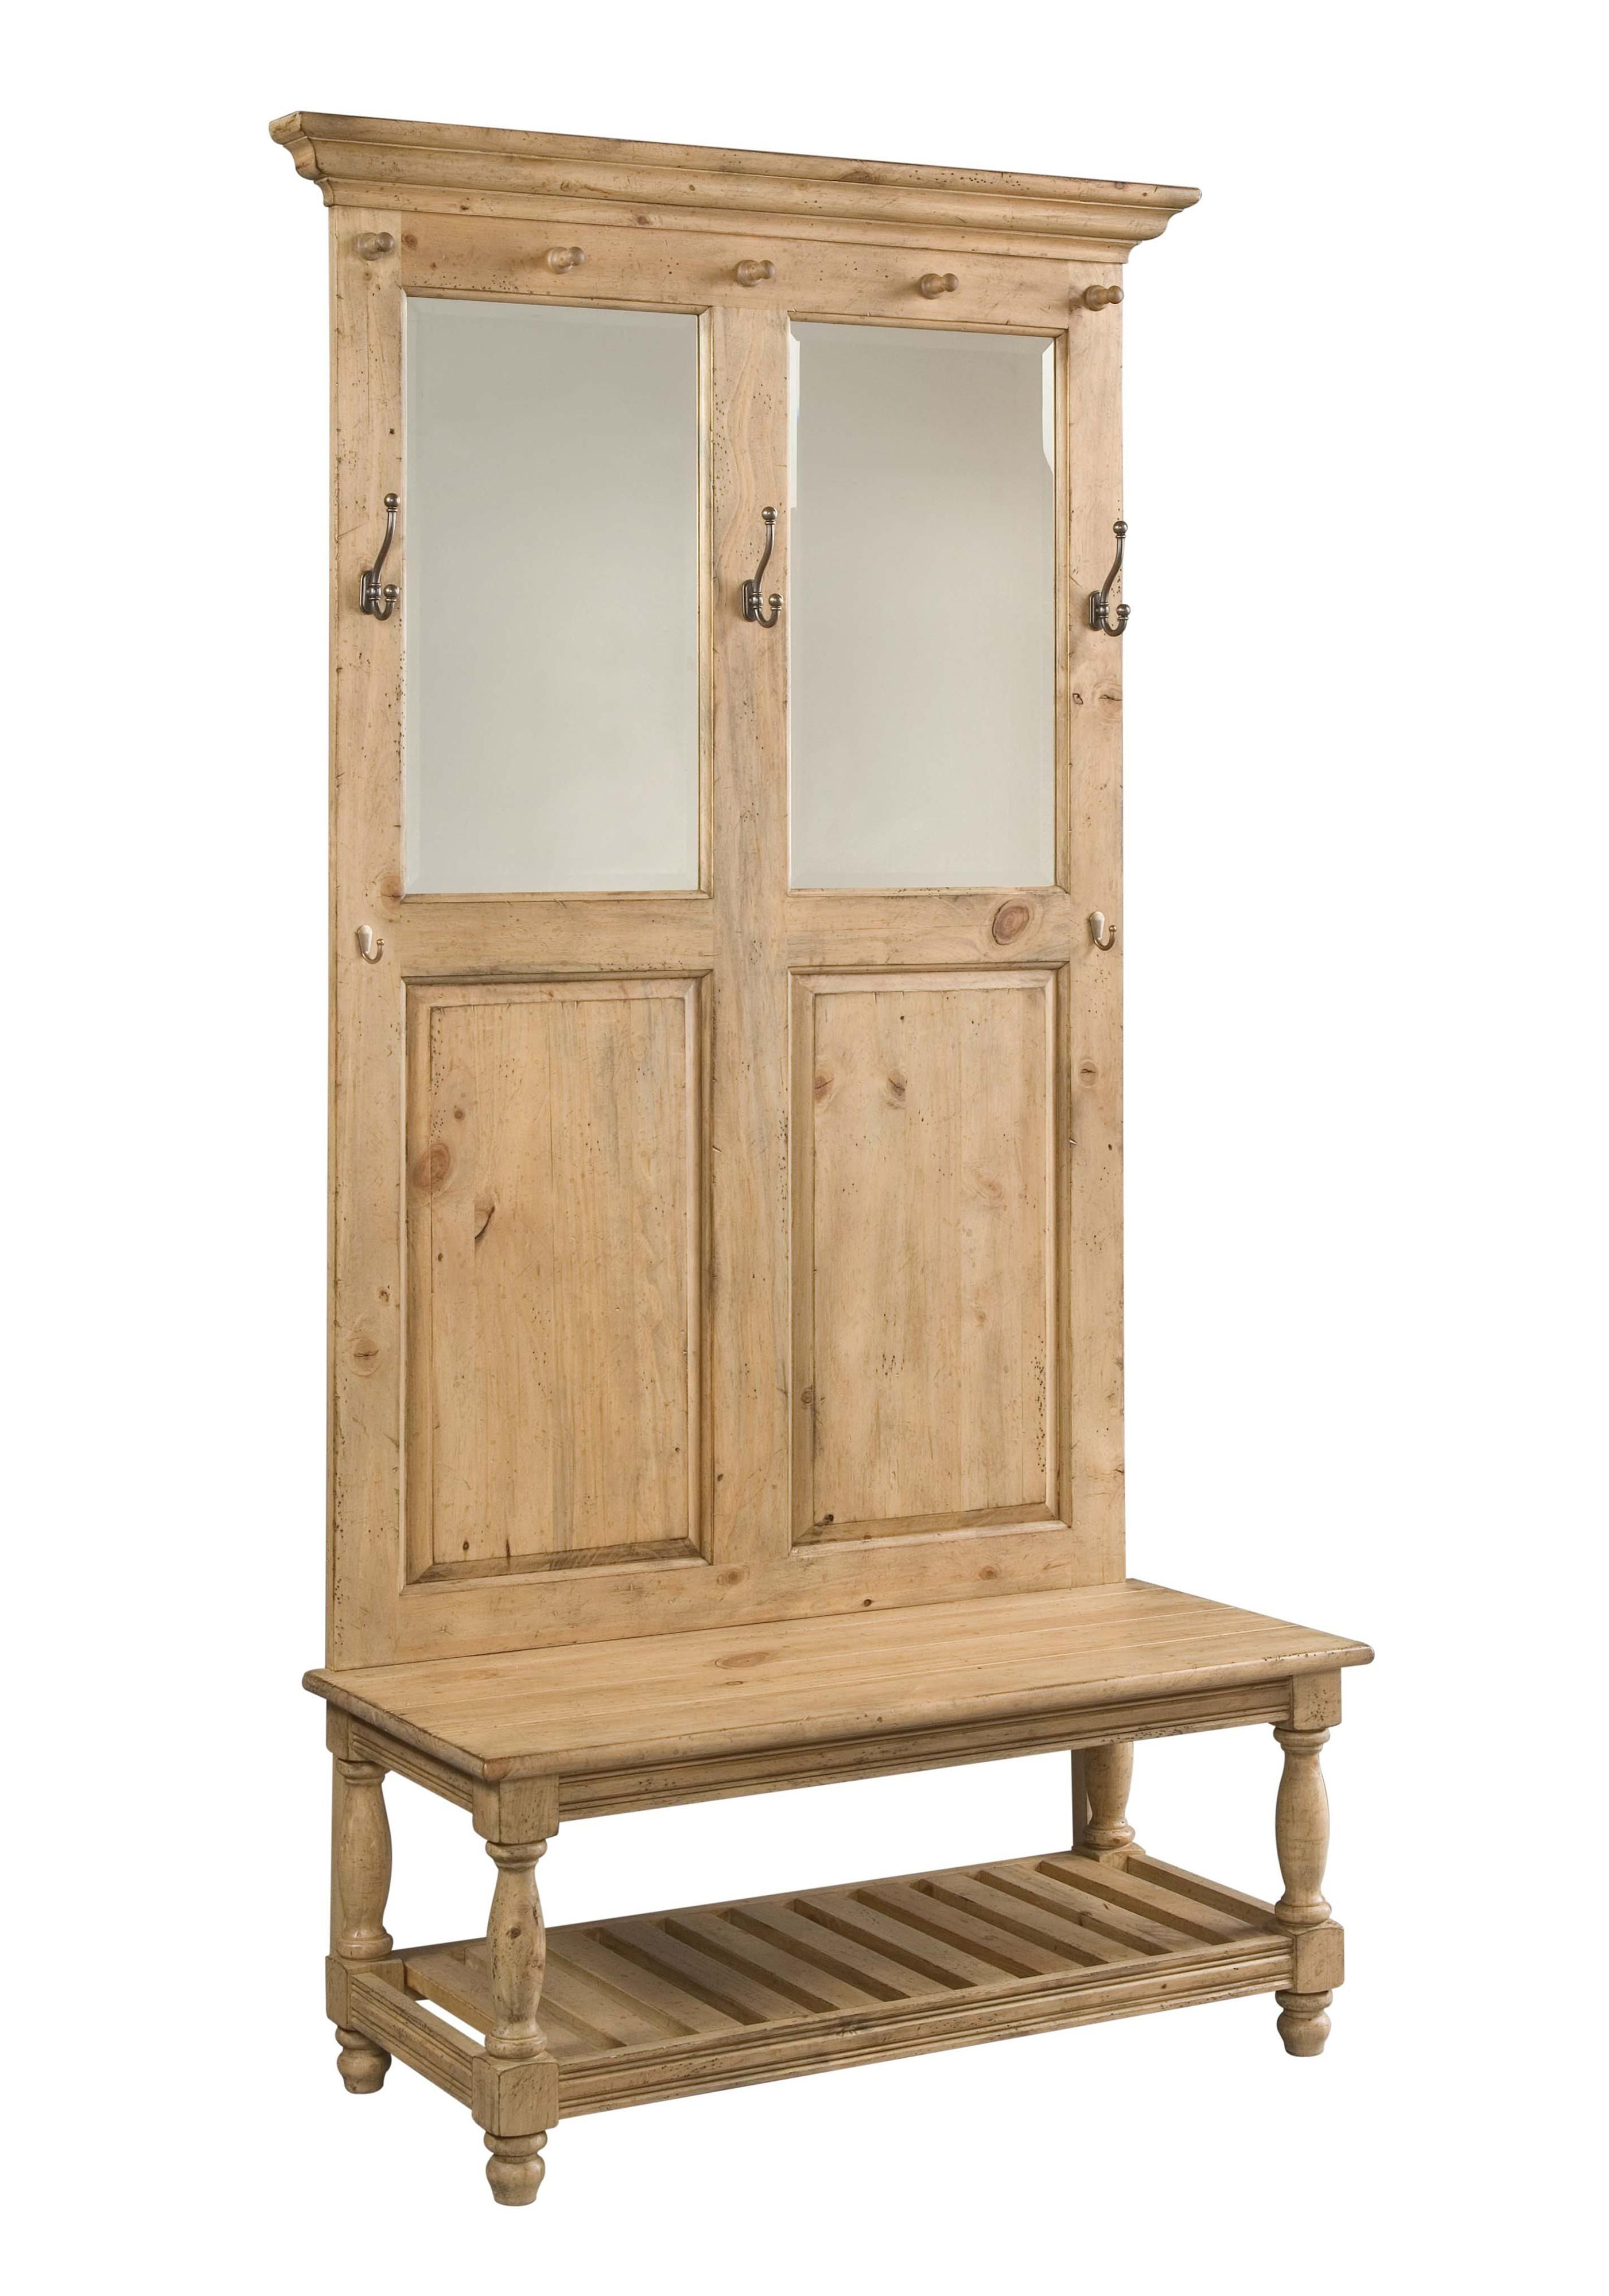 Hallway storage for coats  Homecoming Hall Tree by Kincaid Furniture  Dream Home  Pinterest